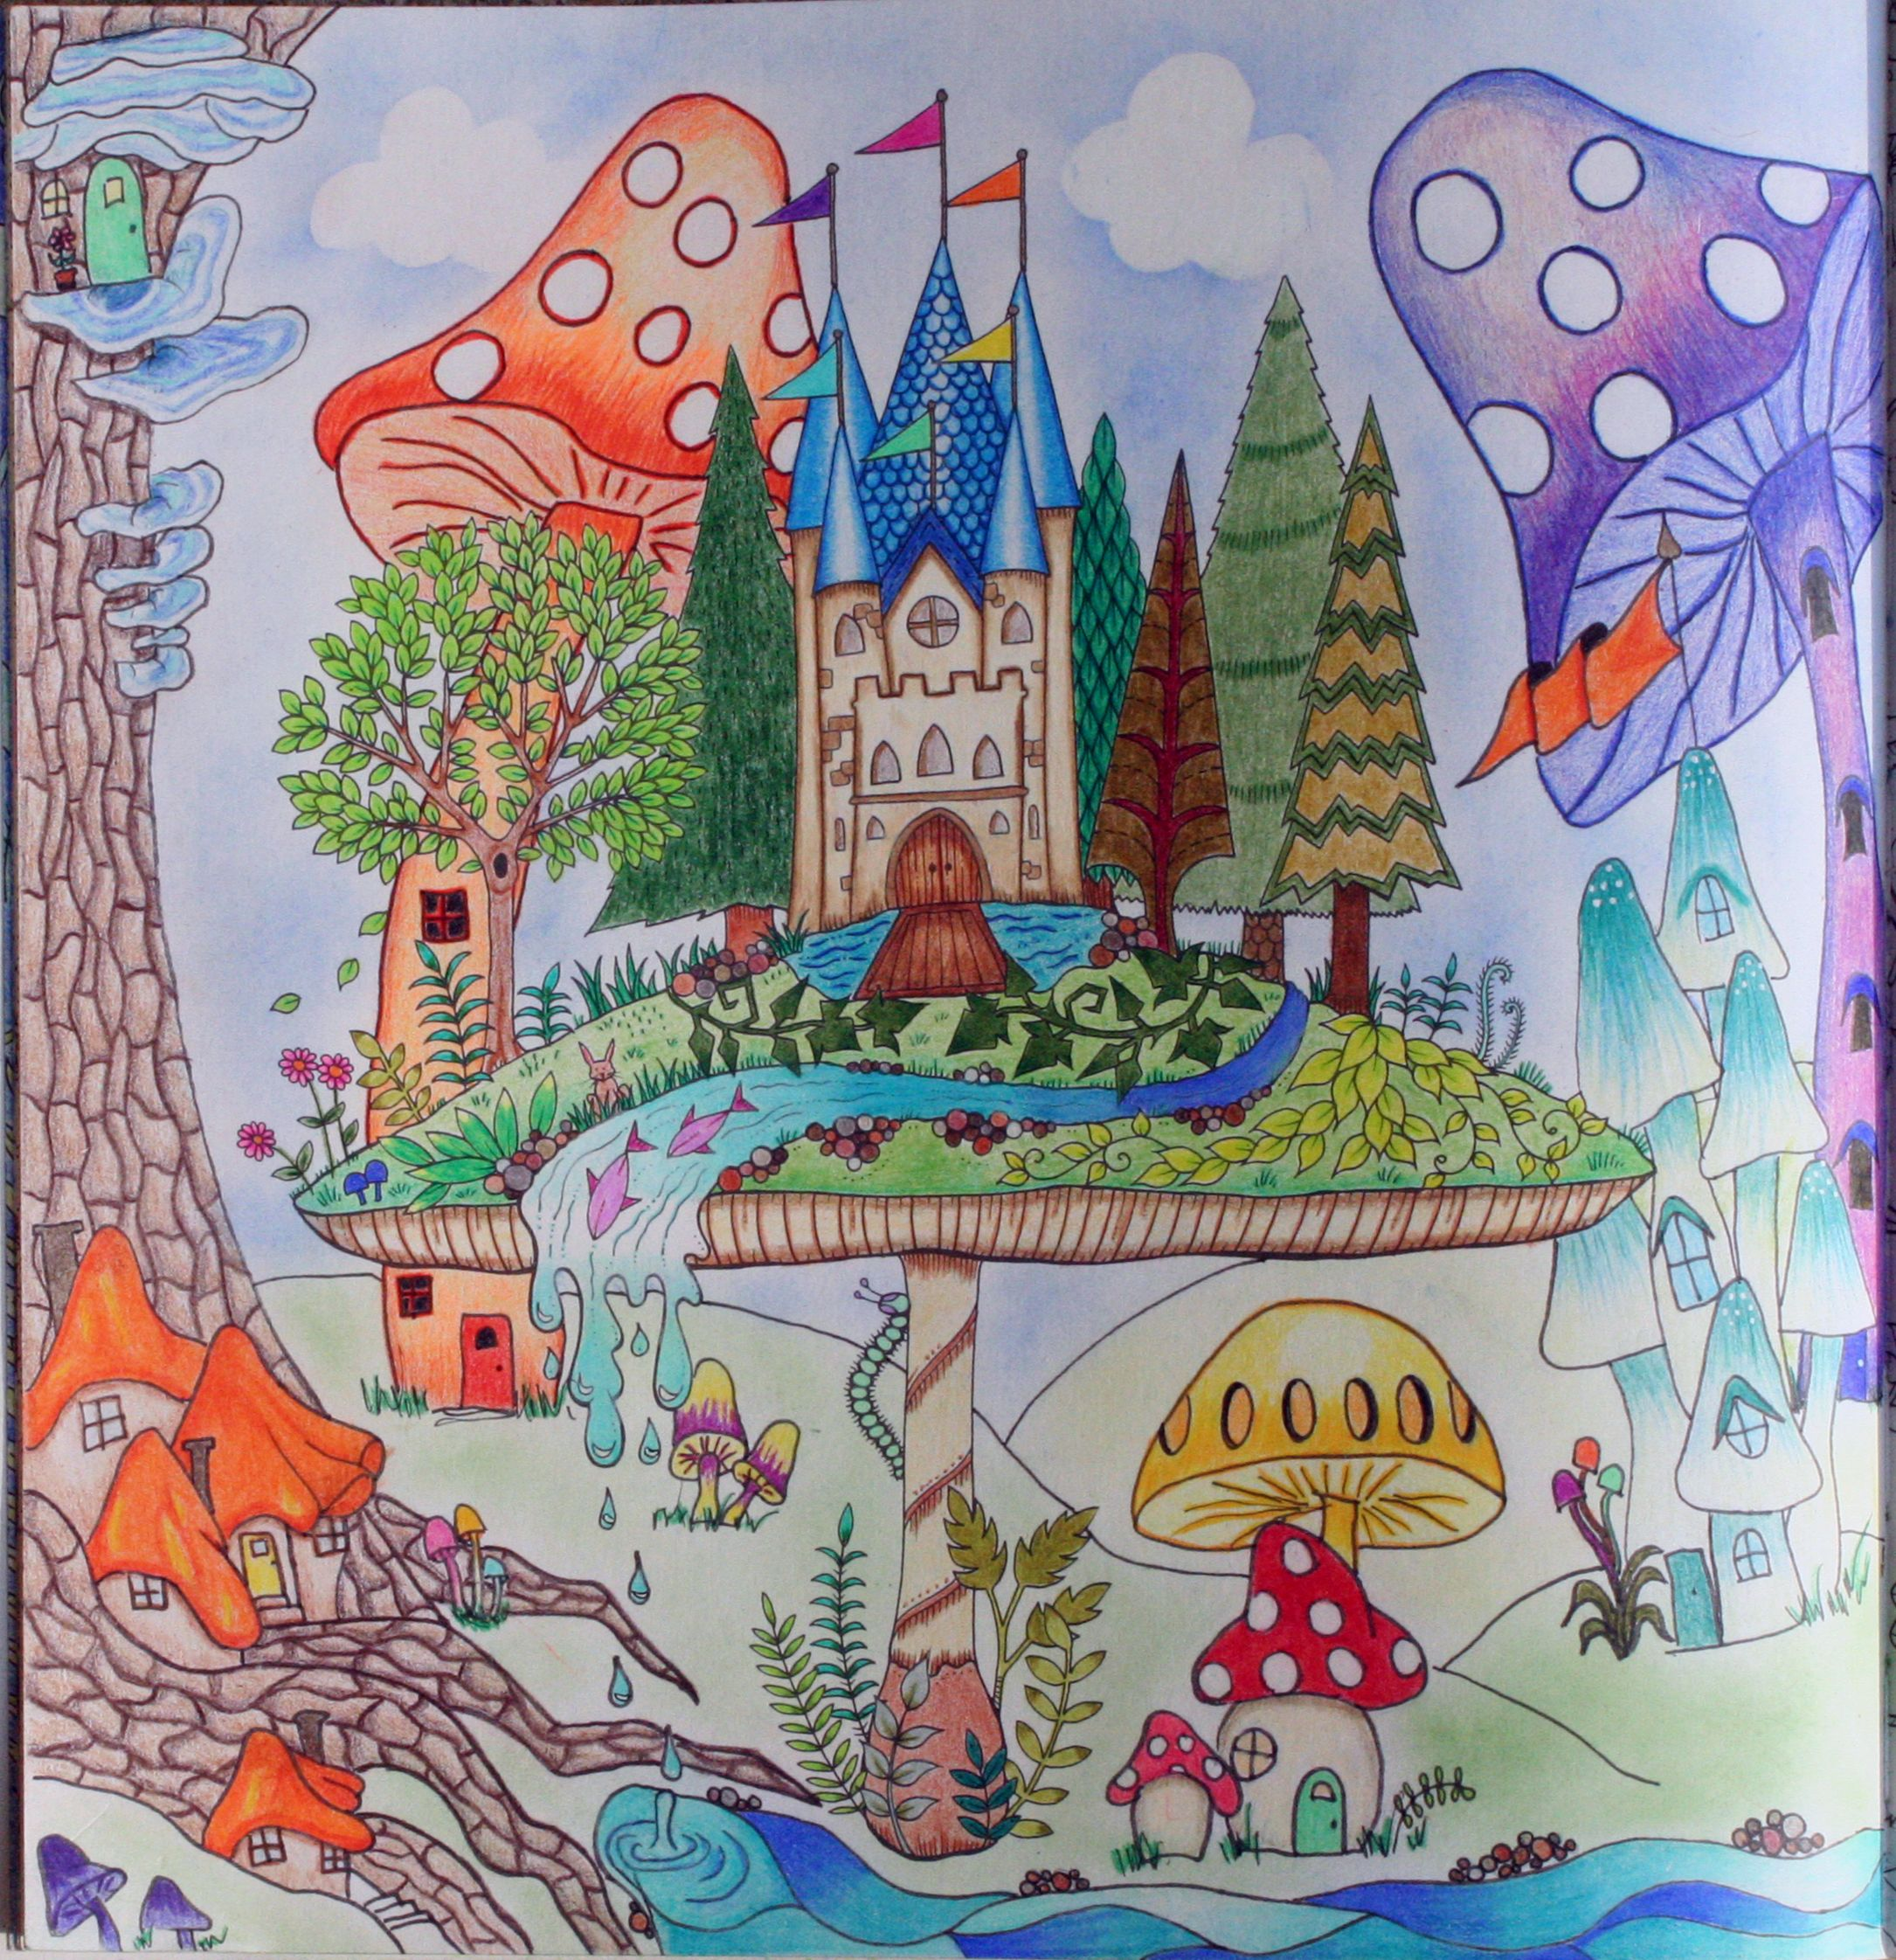 Johanna Basford Coloring Enchanted Forest Mushroom Castle